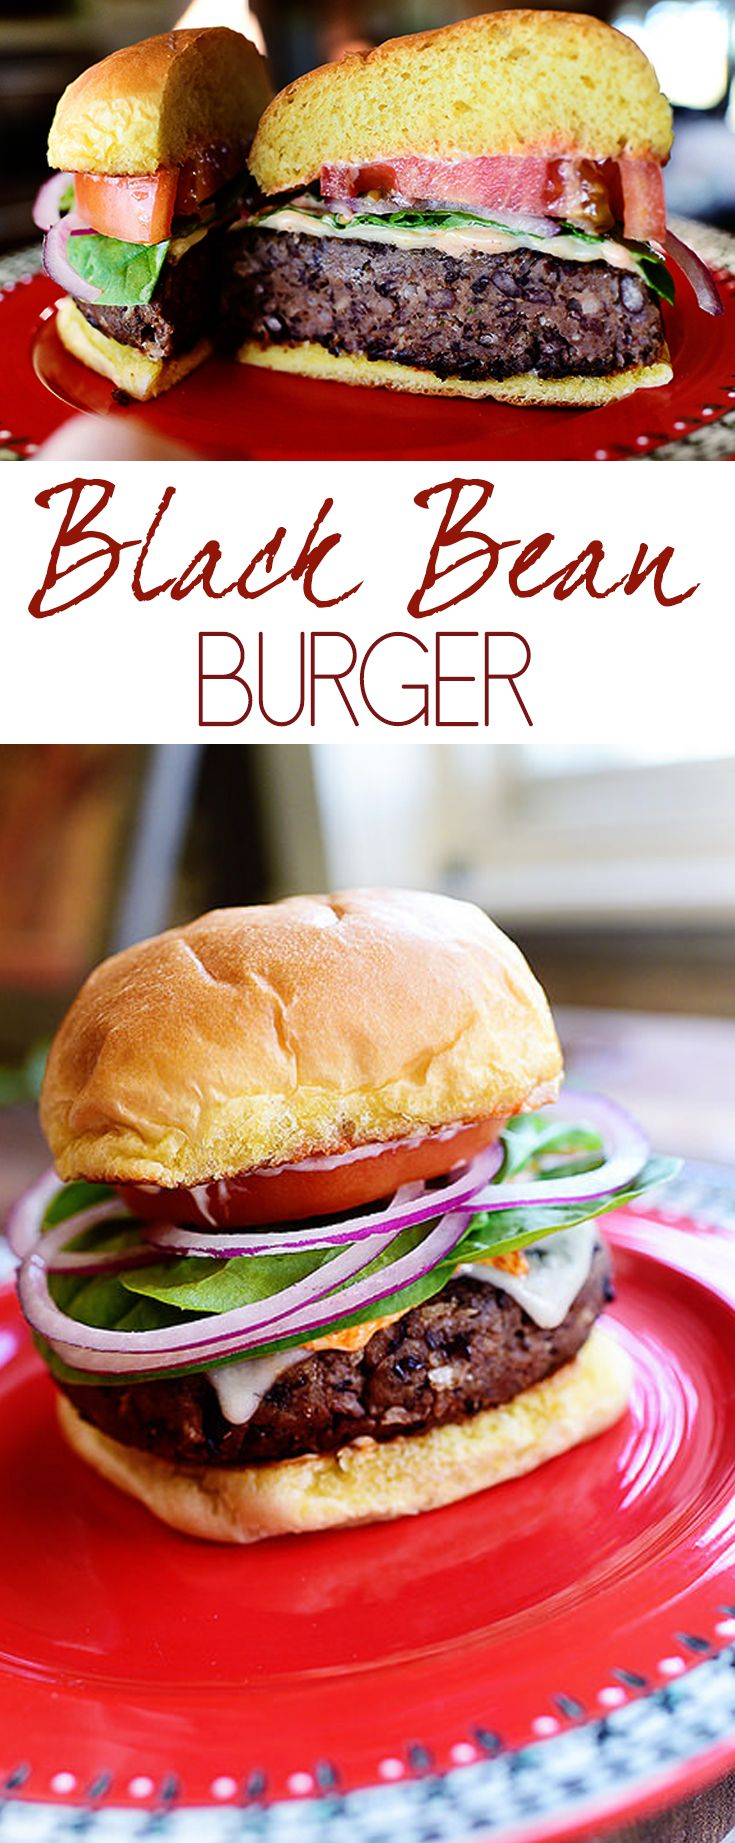 Black Bean Burger Recipe | Grilling & BBQ | Summer Cookout  | healthy recipe ideas @xhealthyrecipex |